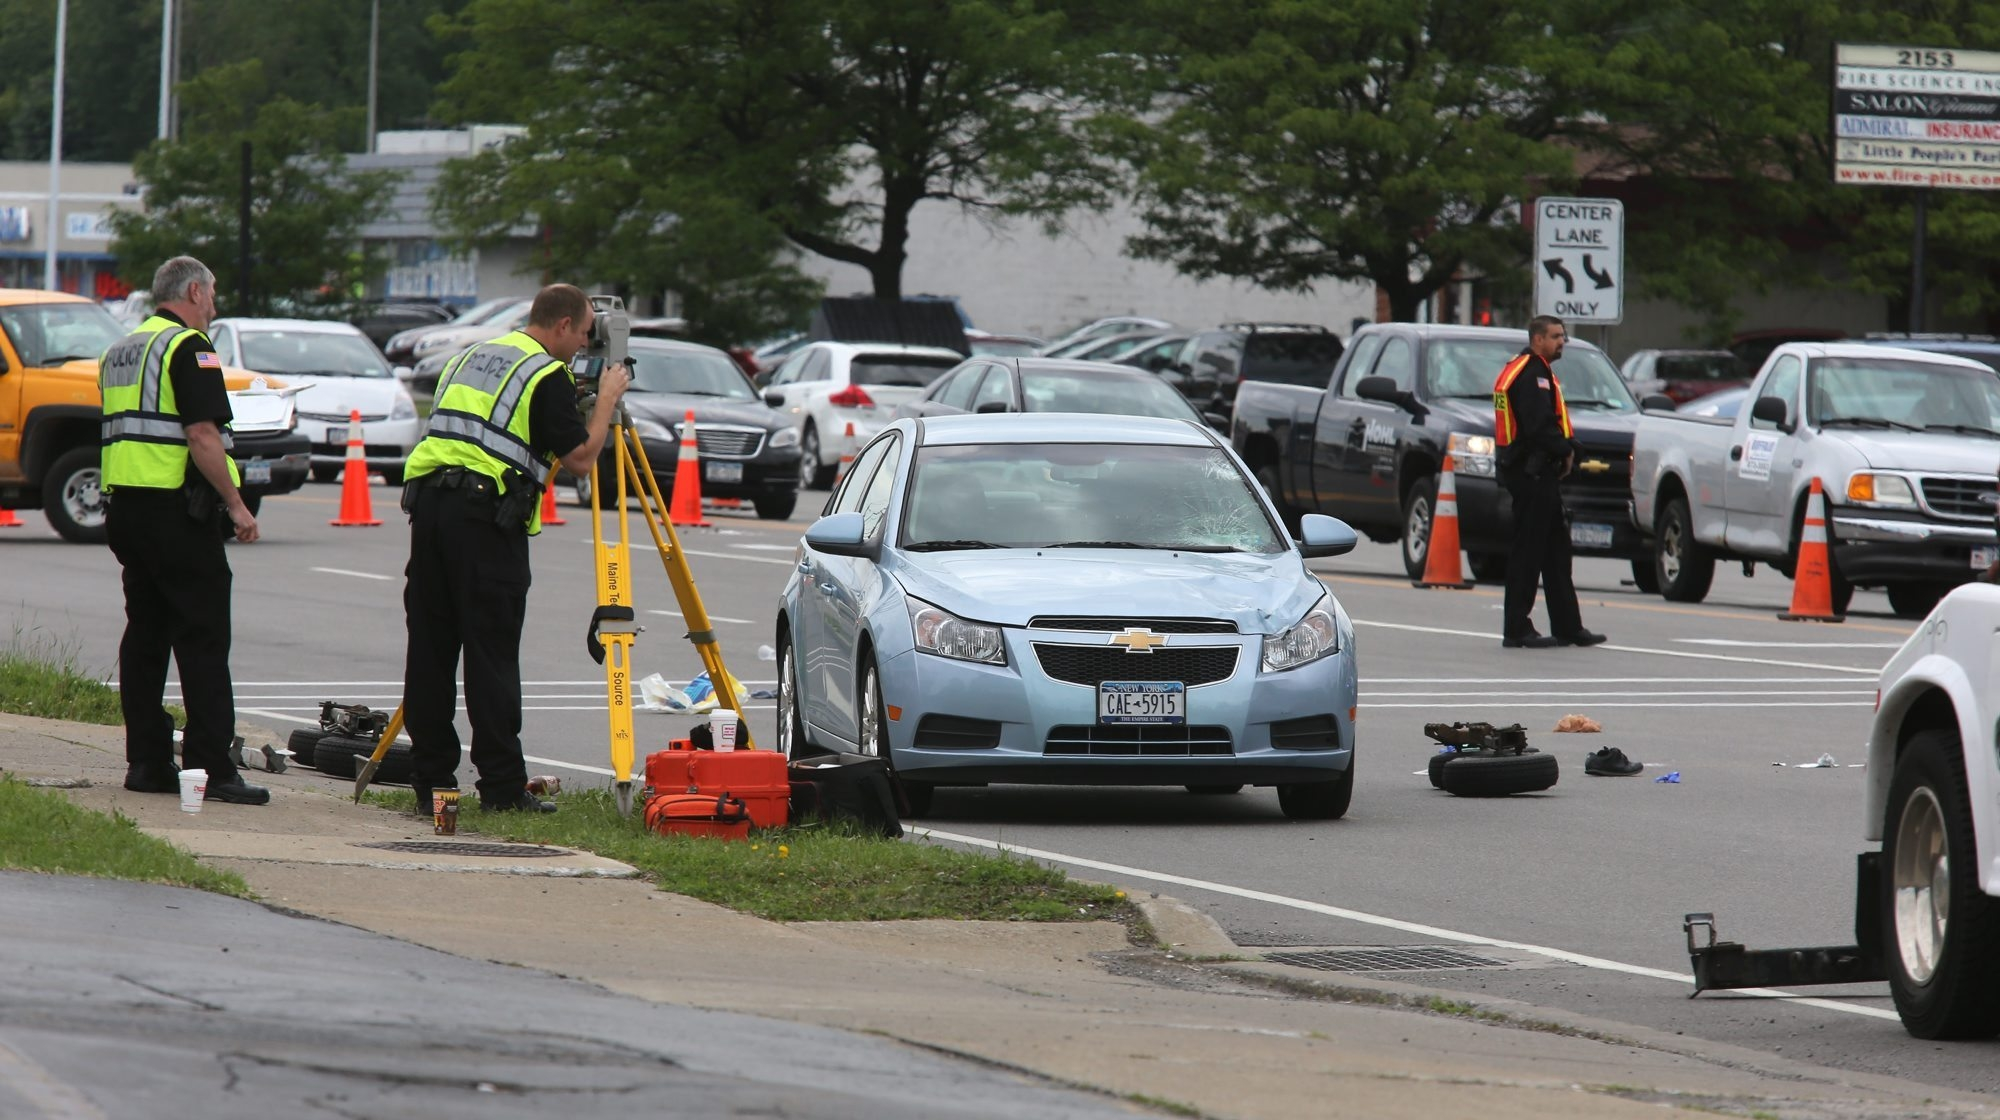 Police with a damaged vehicle at the scene of a fatal pedestrian-car accident on Niagara Falls Boulevard in the Town of Tonawanda, Wednesday, June 5, 2013. (News file photo)